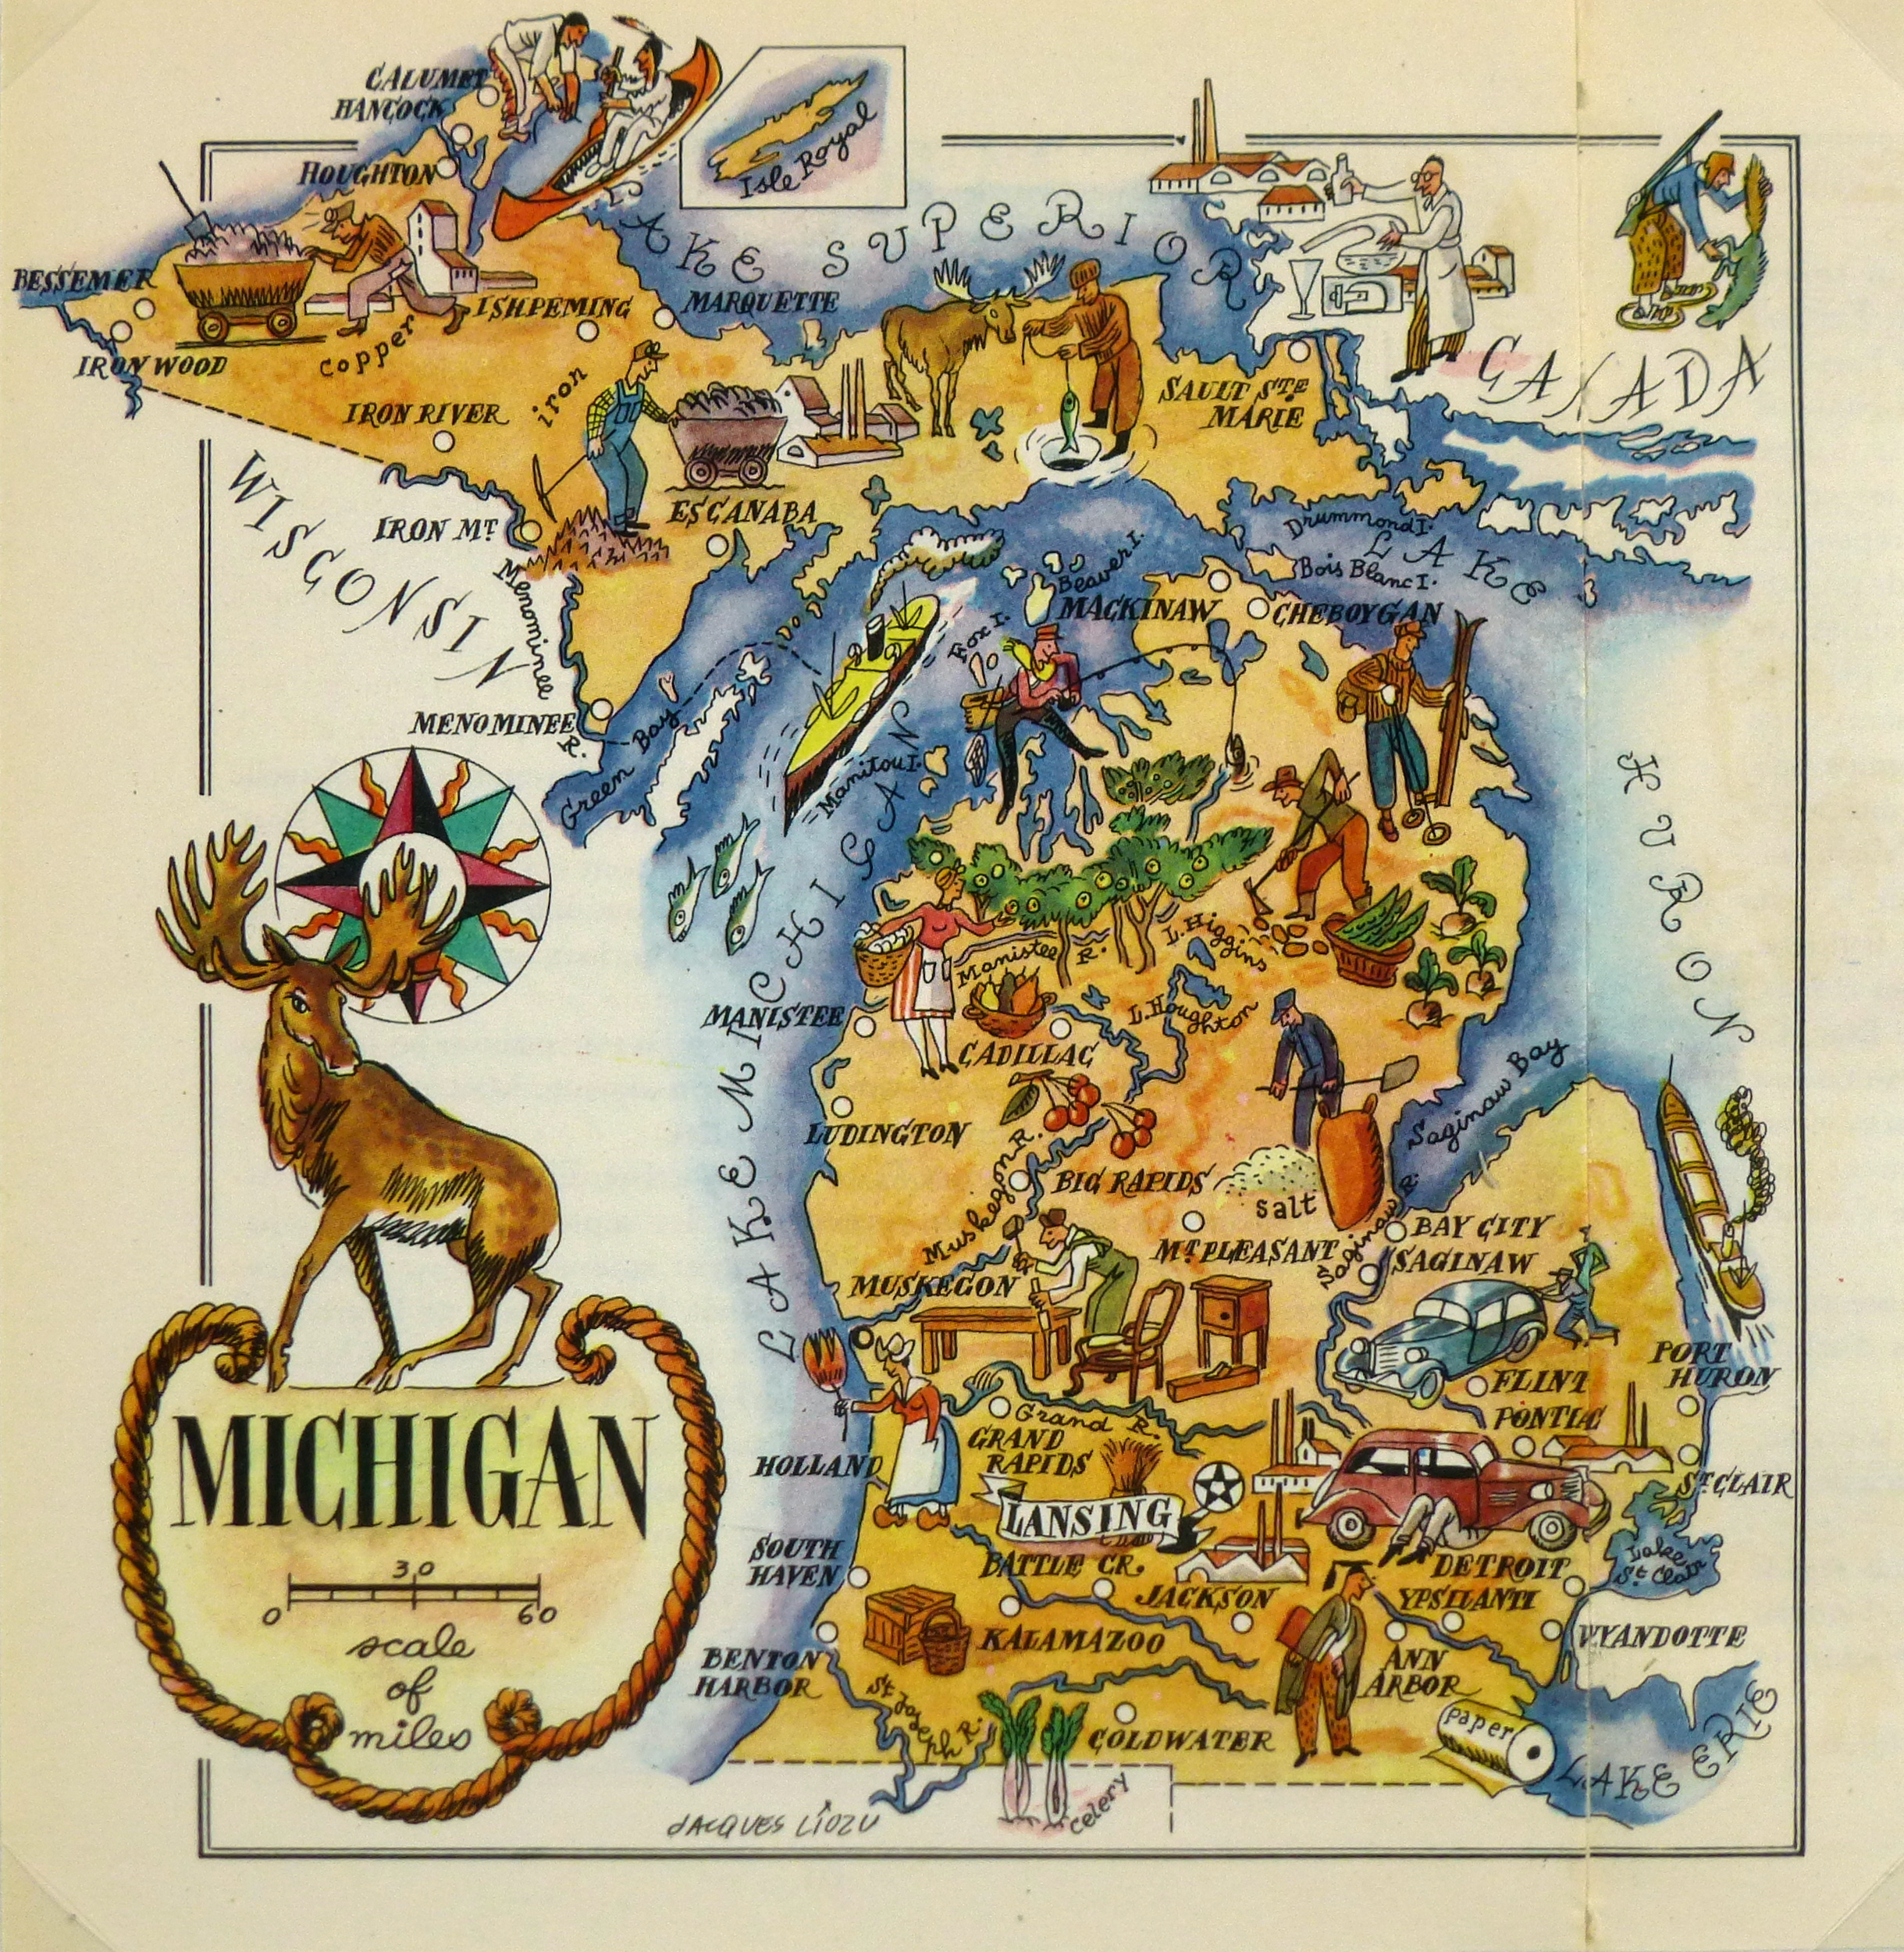 Michigan Pictorial Map 1946